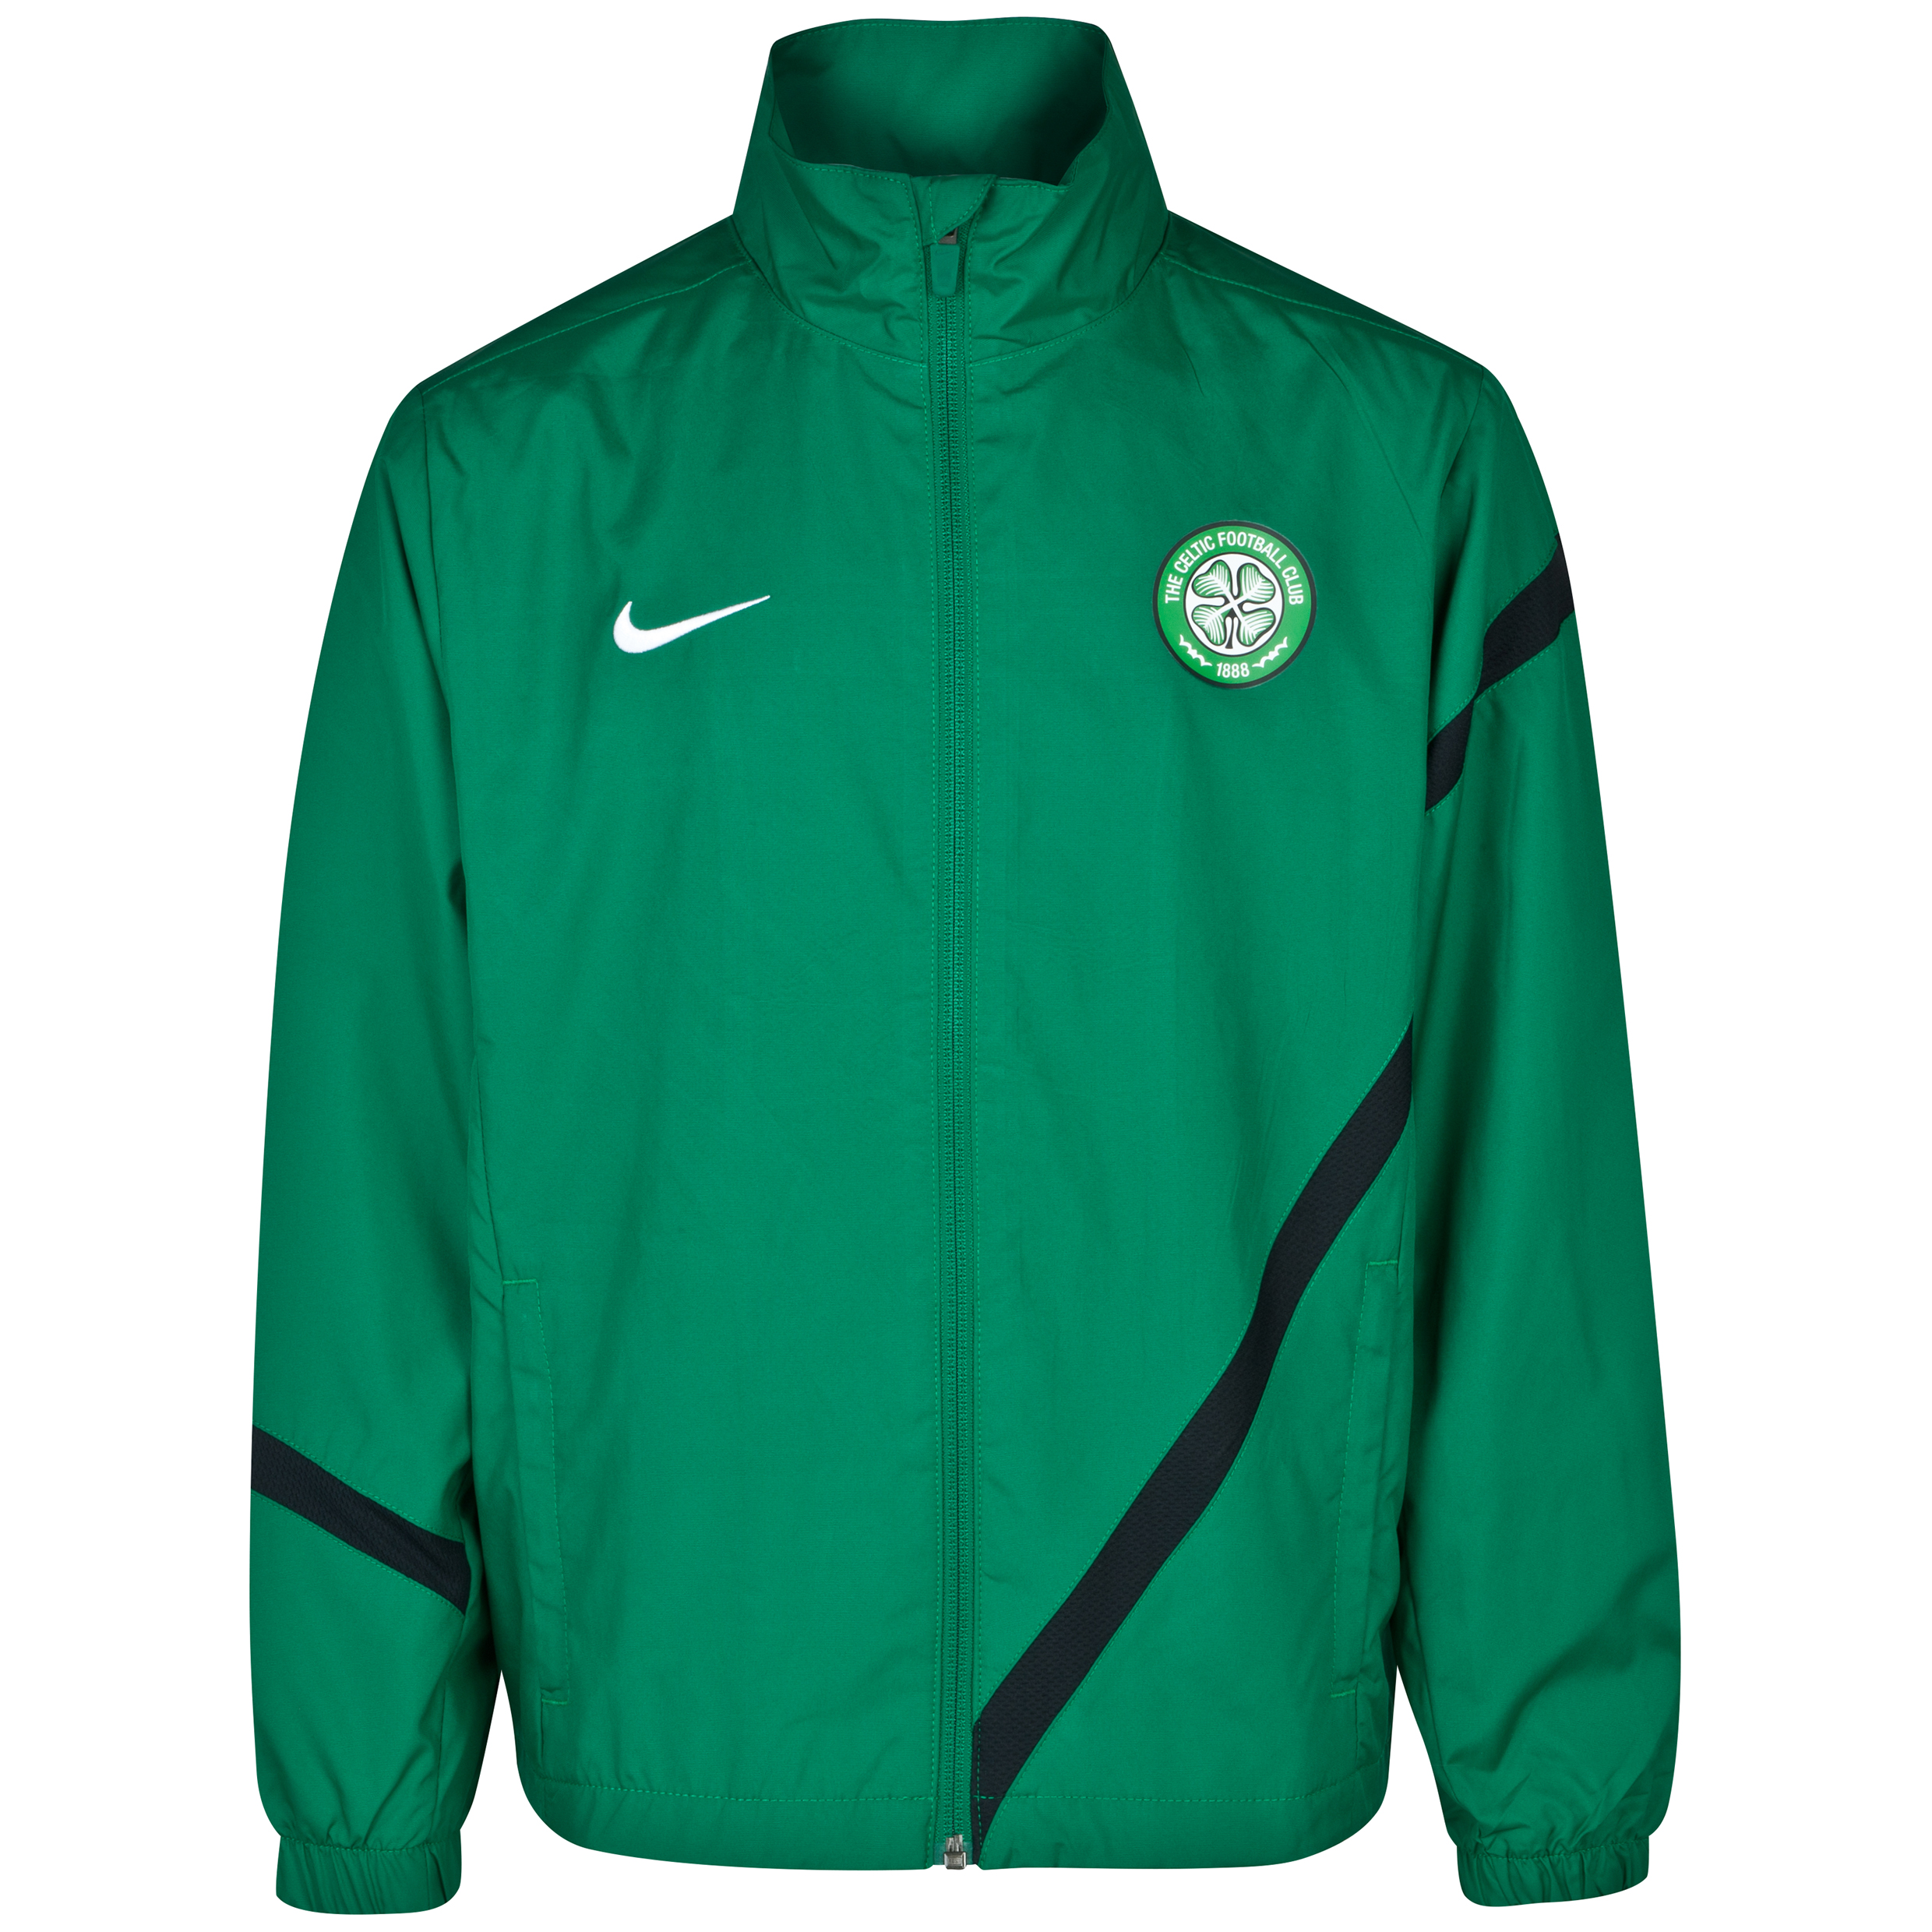 Celtic Comp Sideline Jacket - Pine Green - Kids